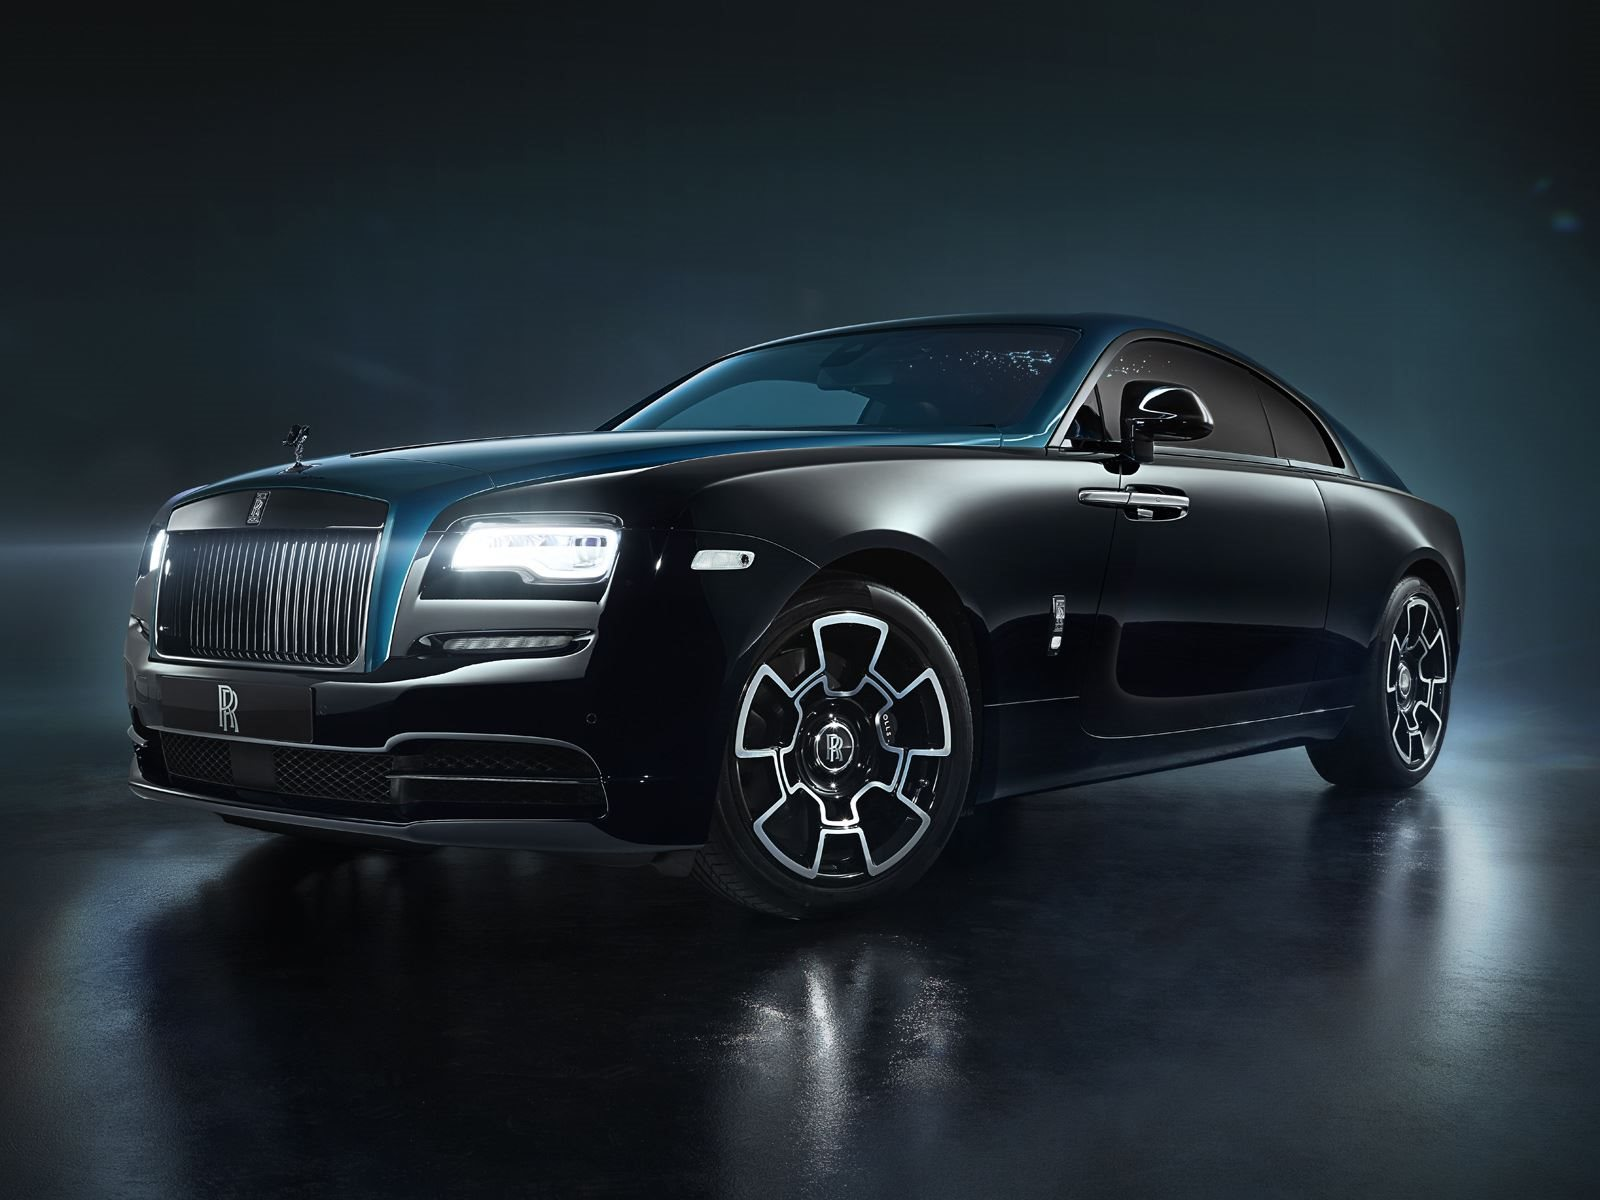 2019 Rolls Royce Ghost >> Rolls-Royce Wraith And Dawn Adamas Black Badge Collection Revealed - CarBuzz